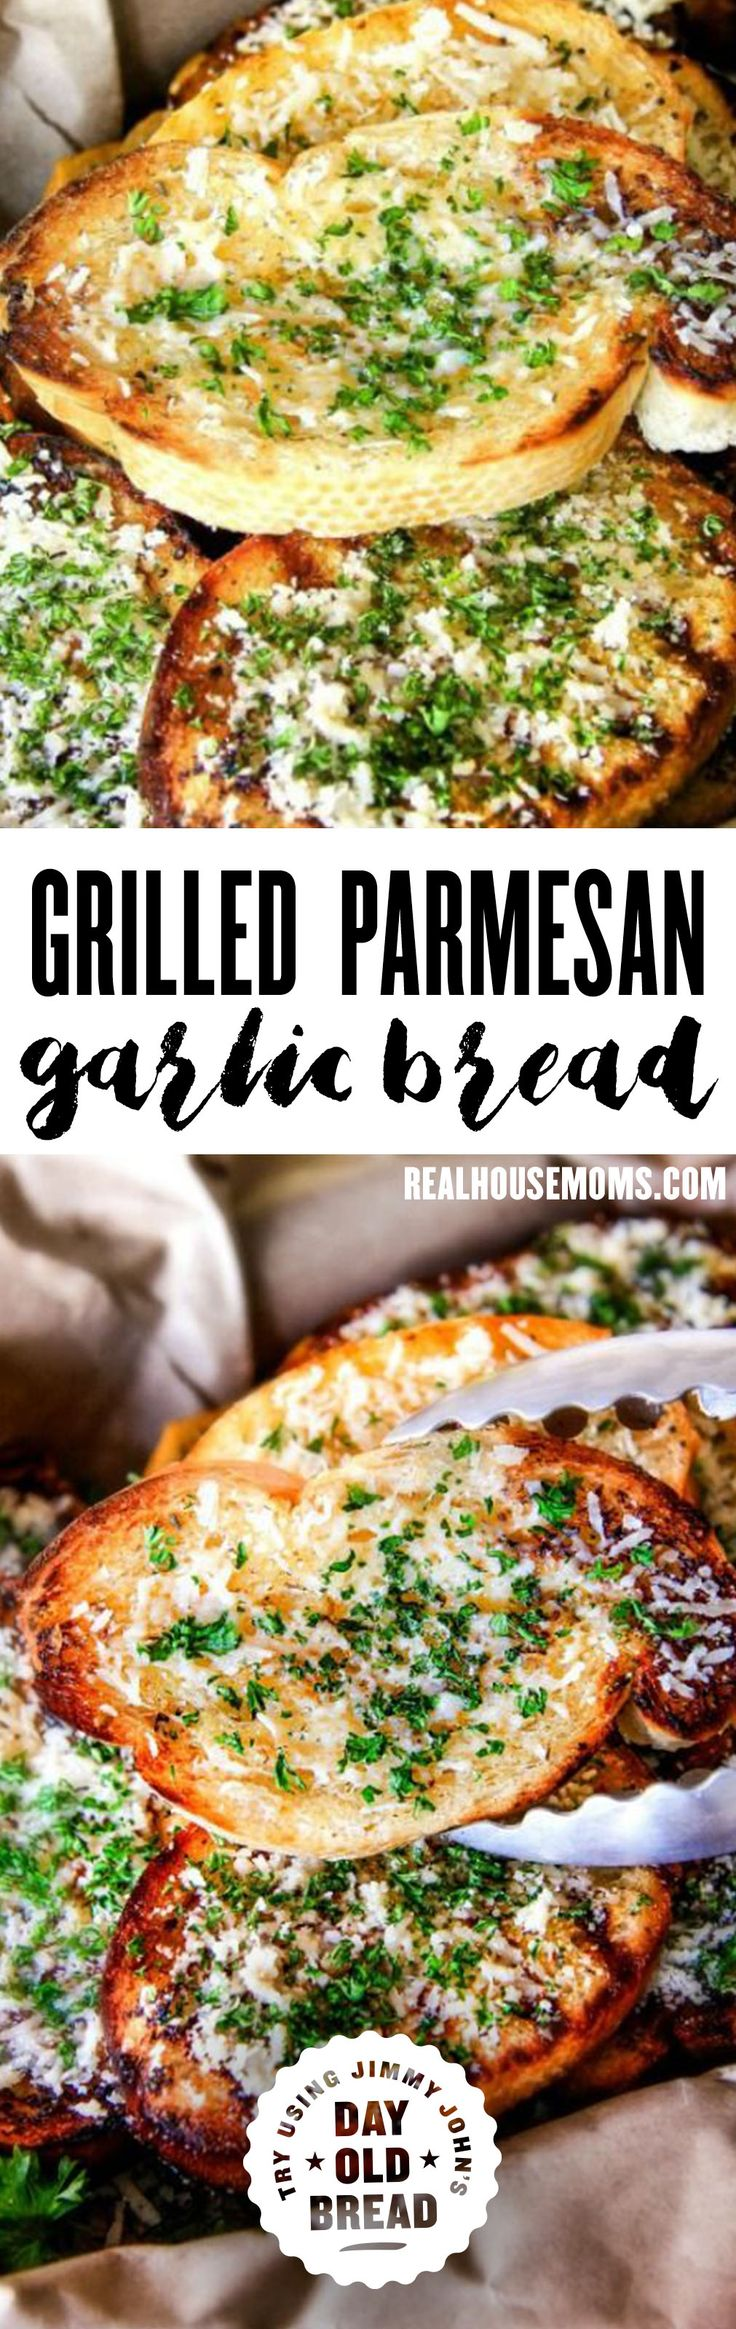 Buttery, thick Italian spiced Grilled Parmesan Garlic Bread is the perfect summer side to almost any meal and so incredibly easy and budget friendly! via @realhousemoms. Try making with Jimmy John's Day Old Bread!